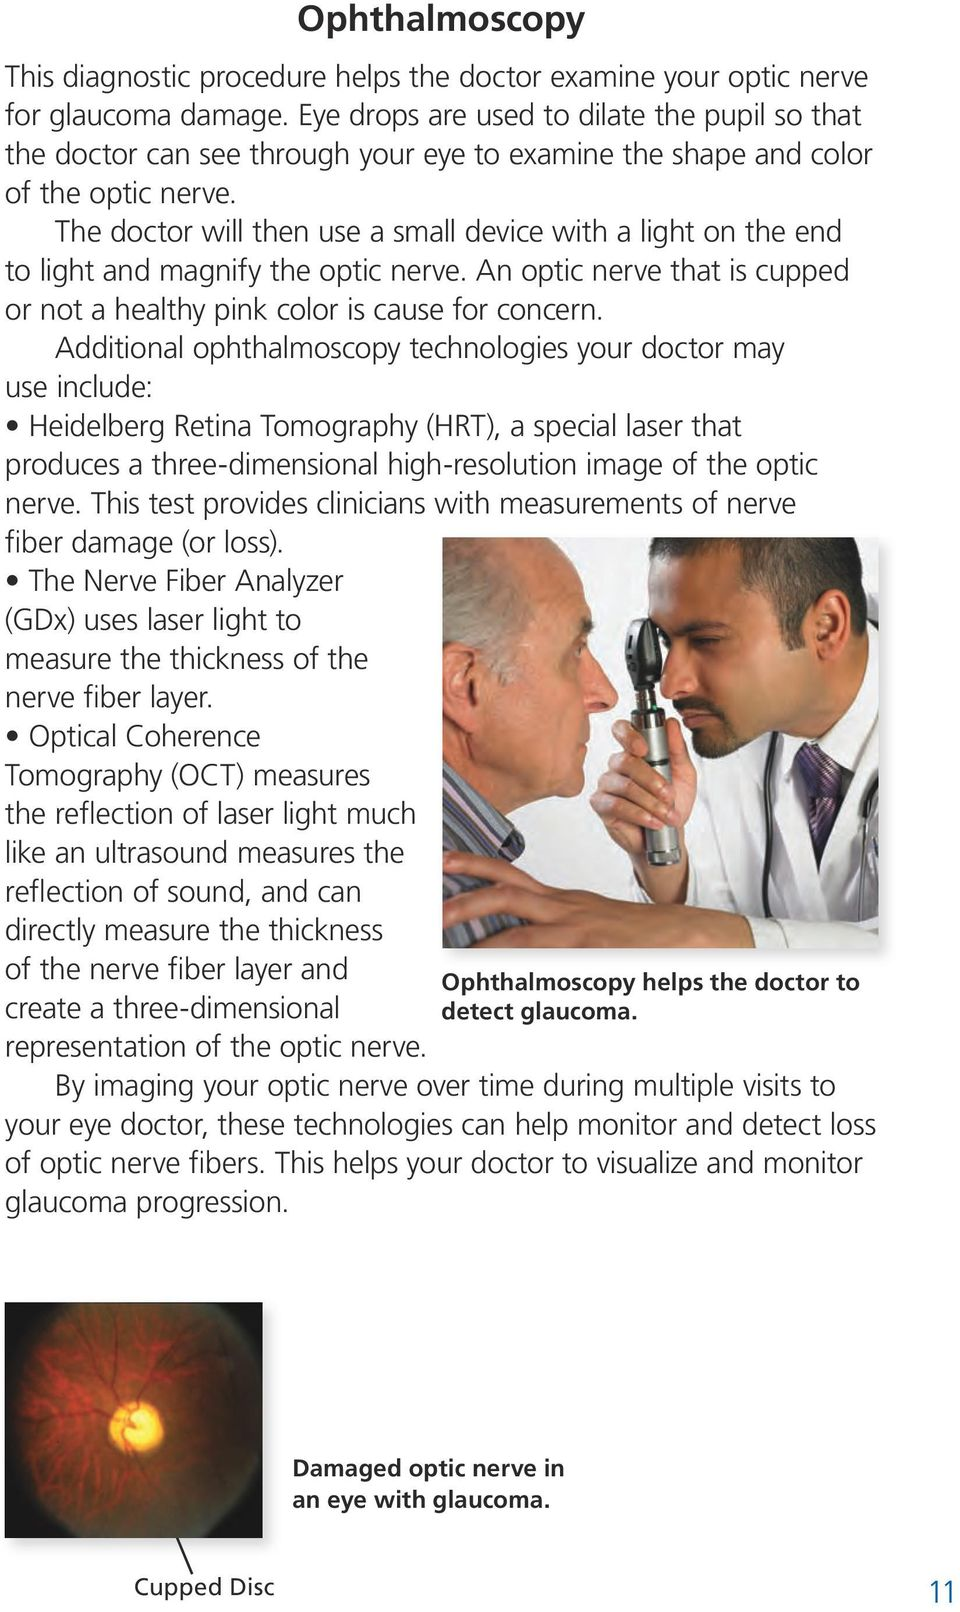 The doctor will then use a small device with a light on the end to light and magnify the optic nerve. An optic nerve that is cupped or not a healthy pink color is cause for concern.